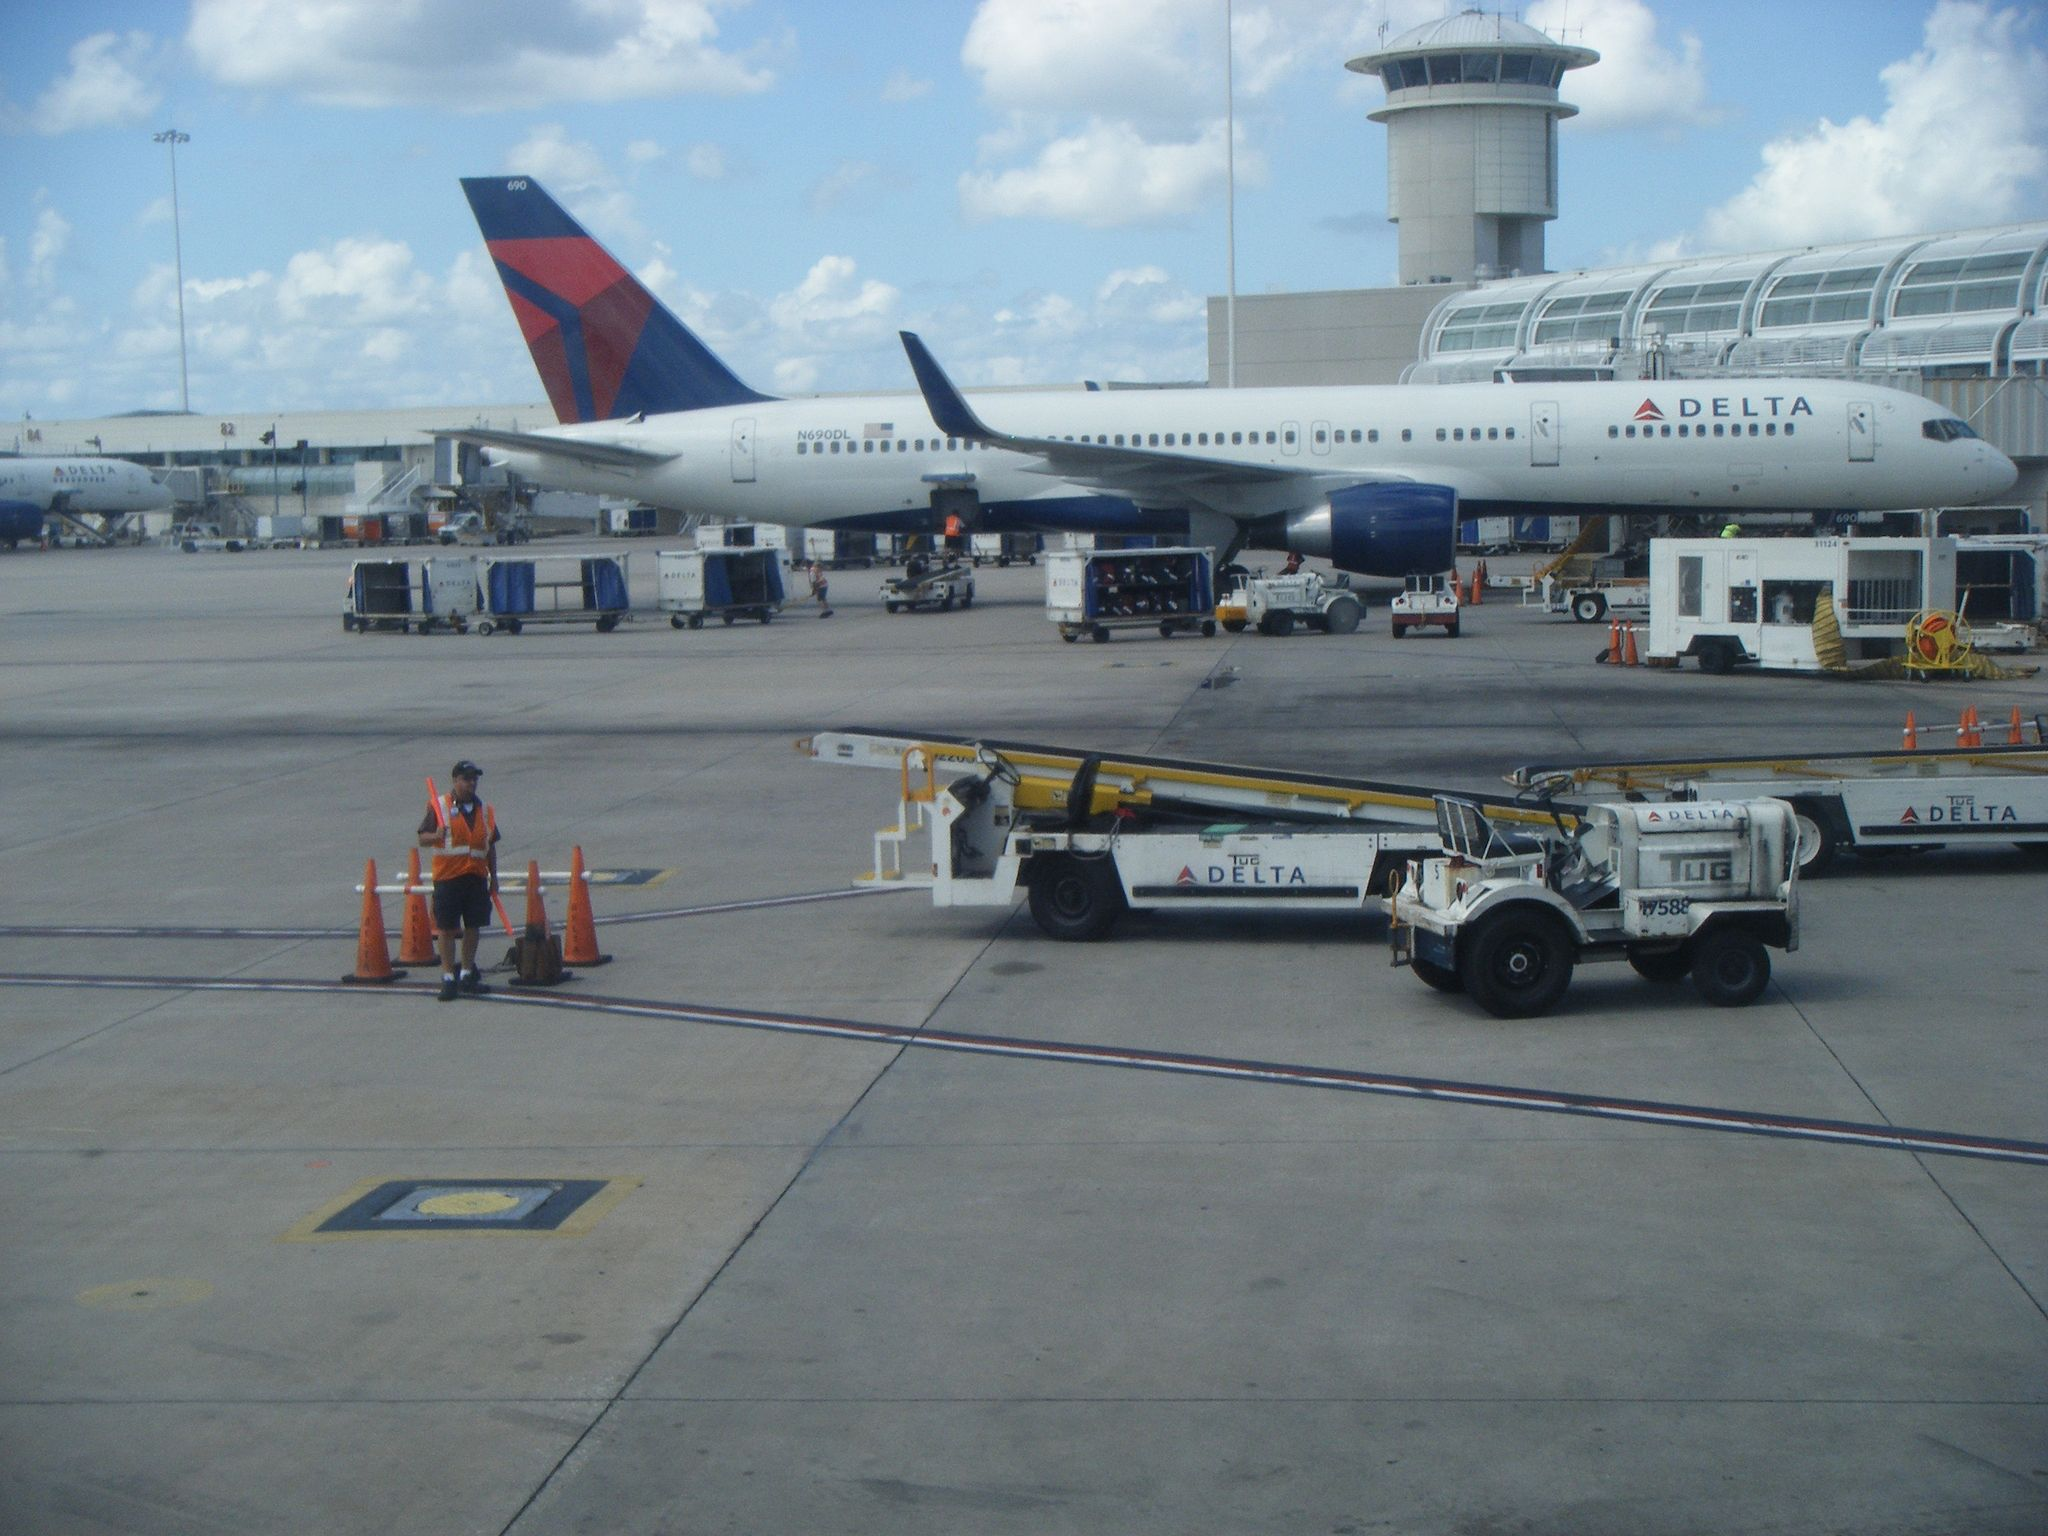 2048px-Delta_airplanes_at_Orlando_International_Airport